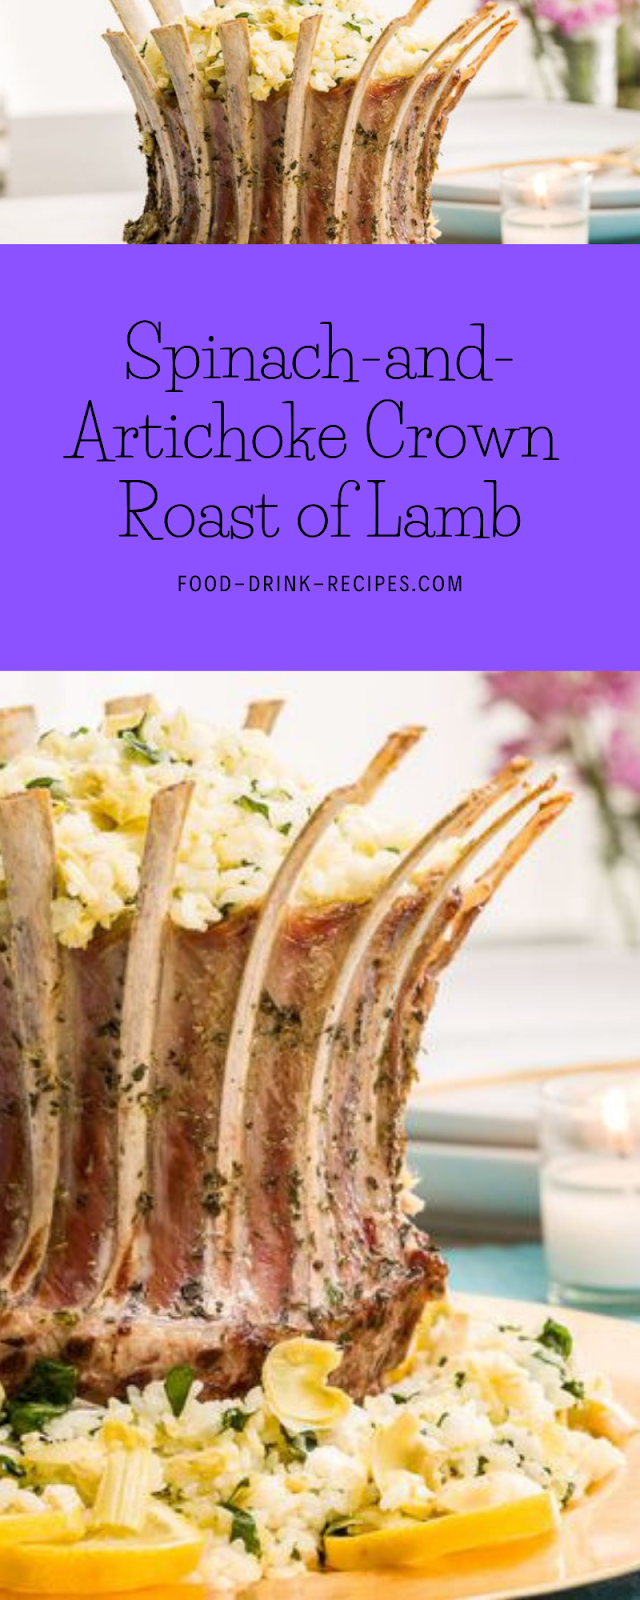 Spinach-and-Artichoke Crown Roast of Lamb - food-drink-recipes.com